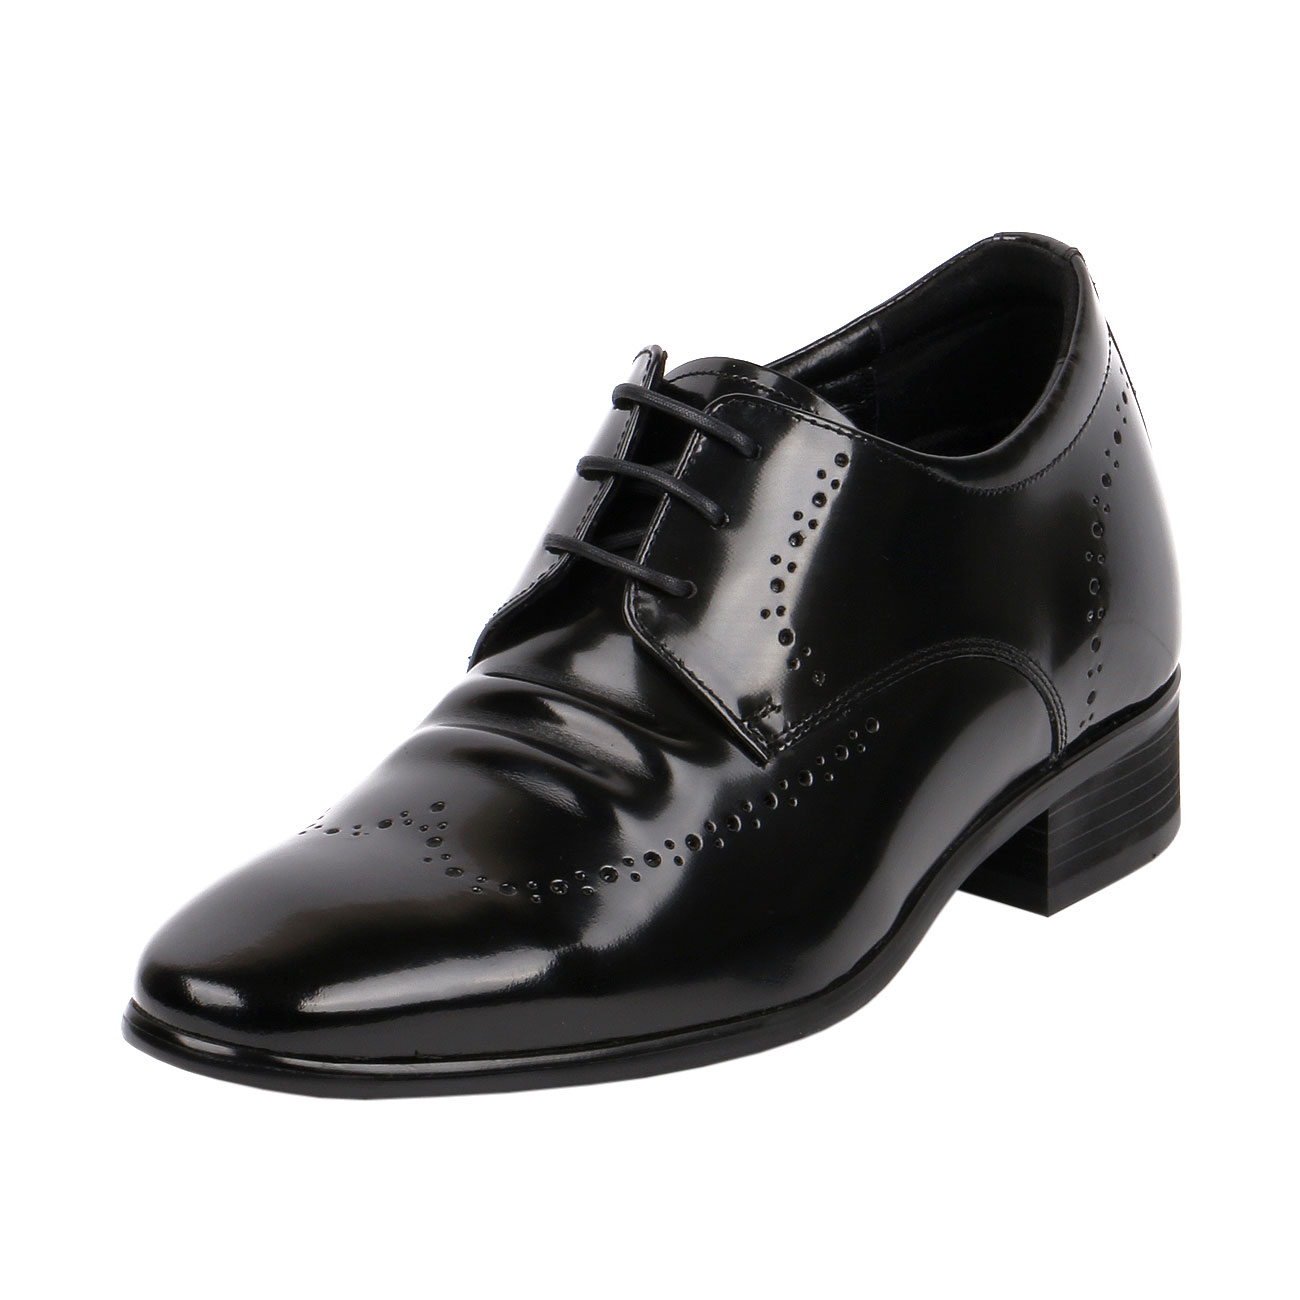 Hollywood Celebrity Love Wingtip Gentlemen Glossy 2.8